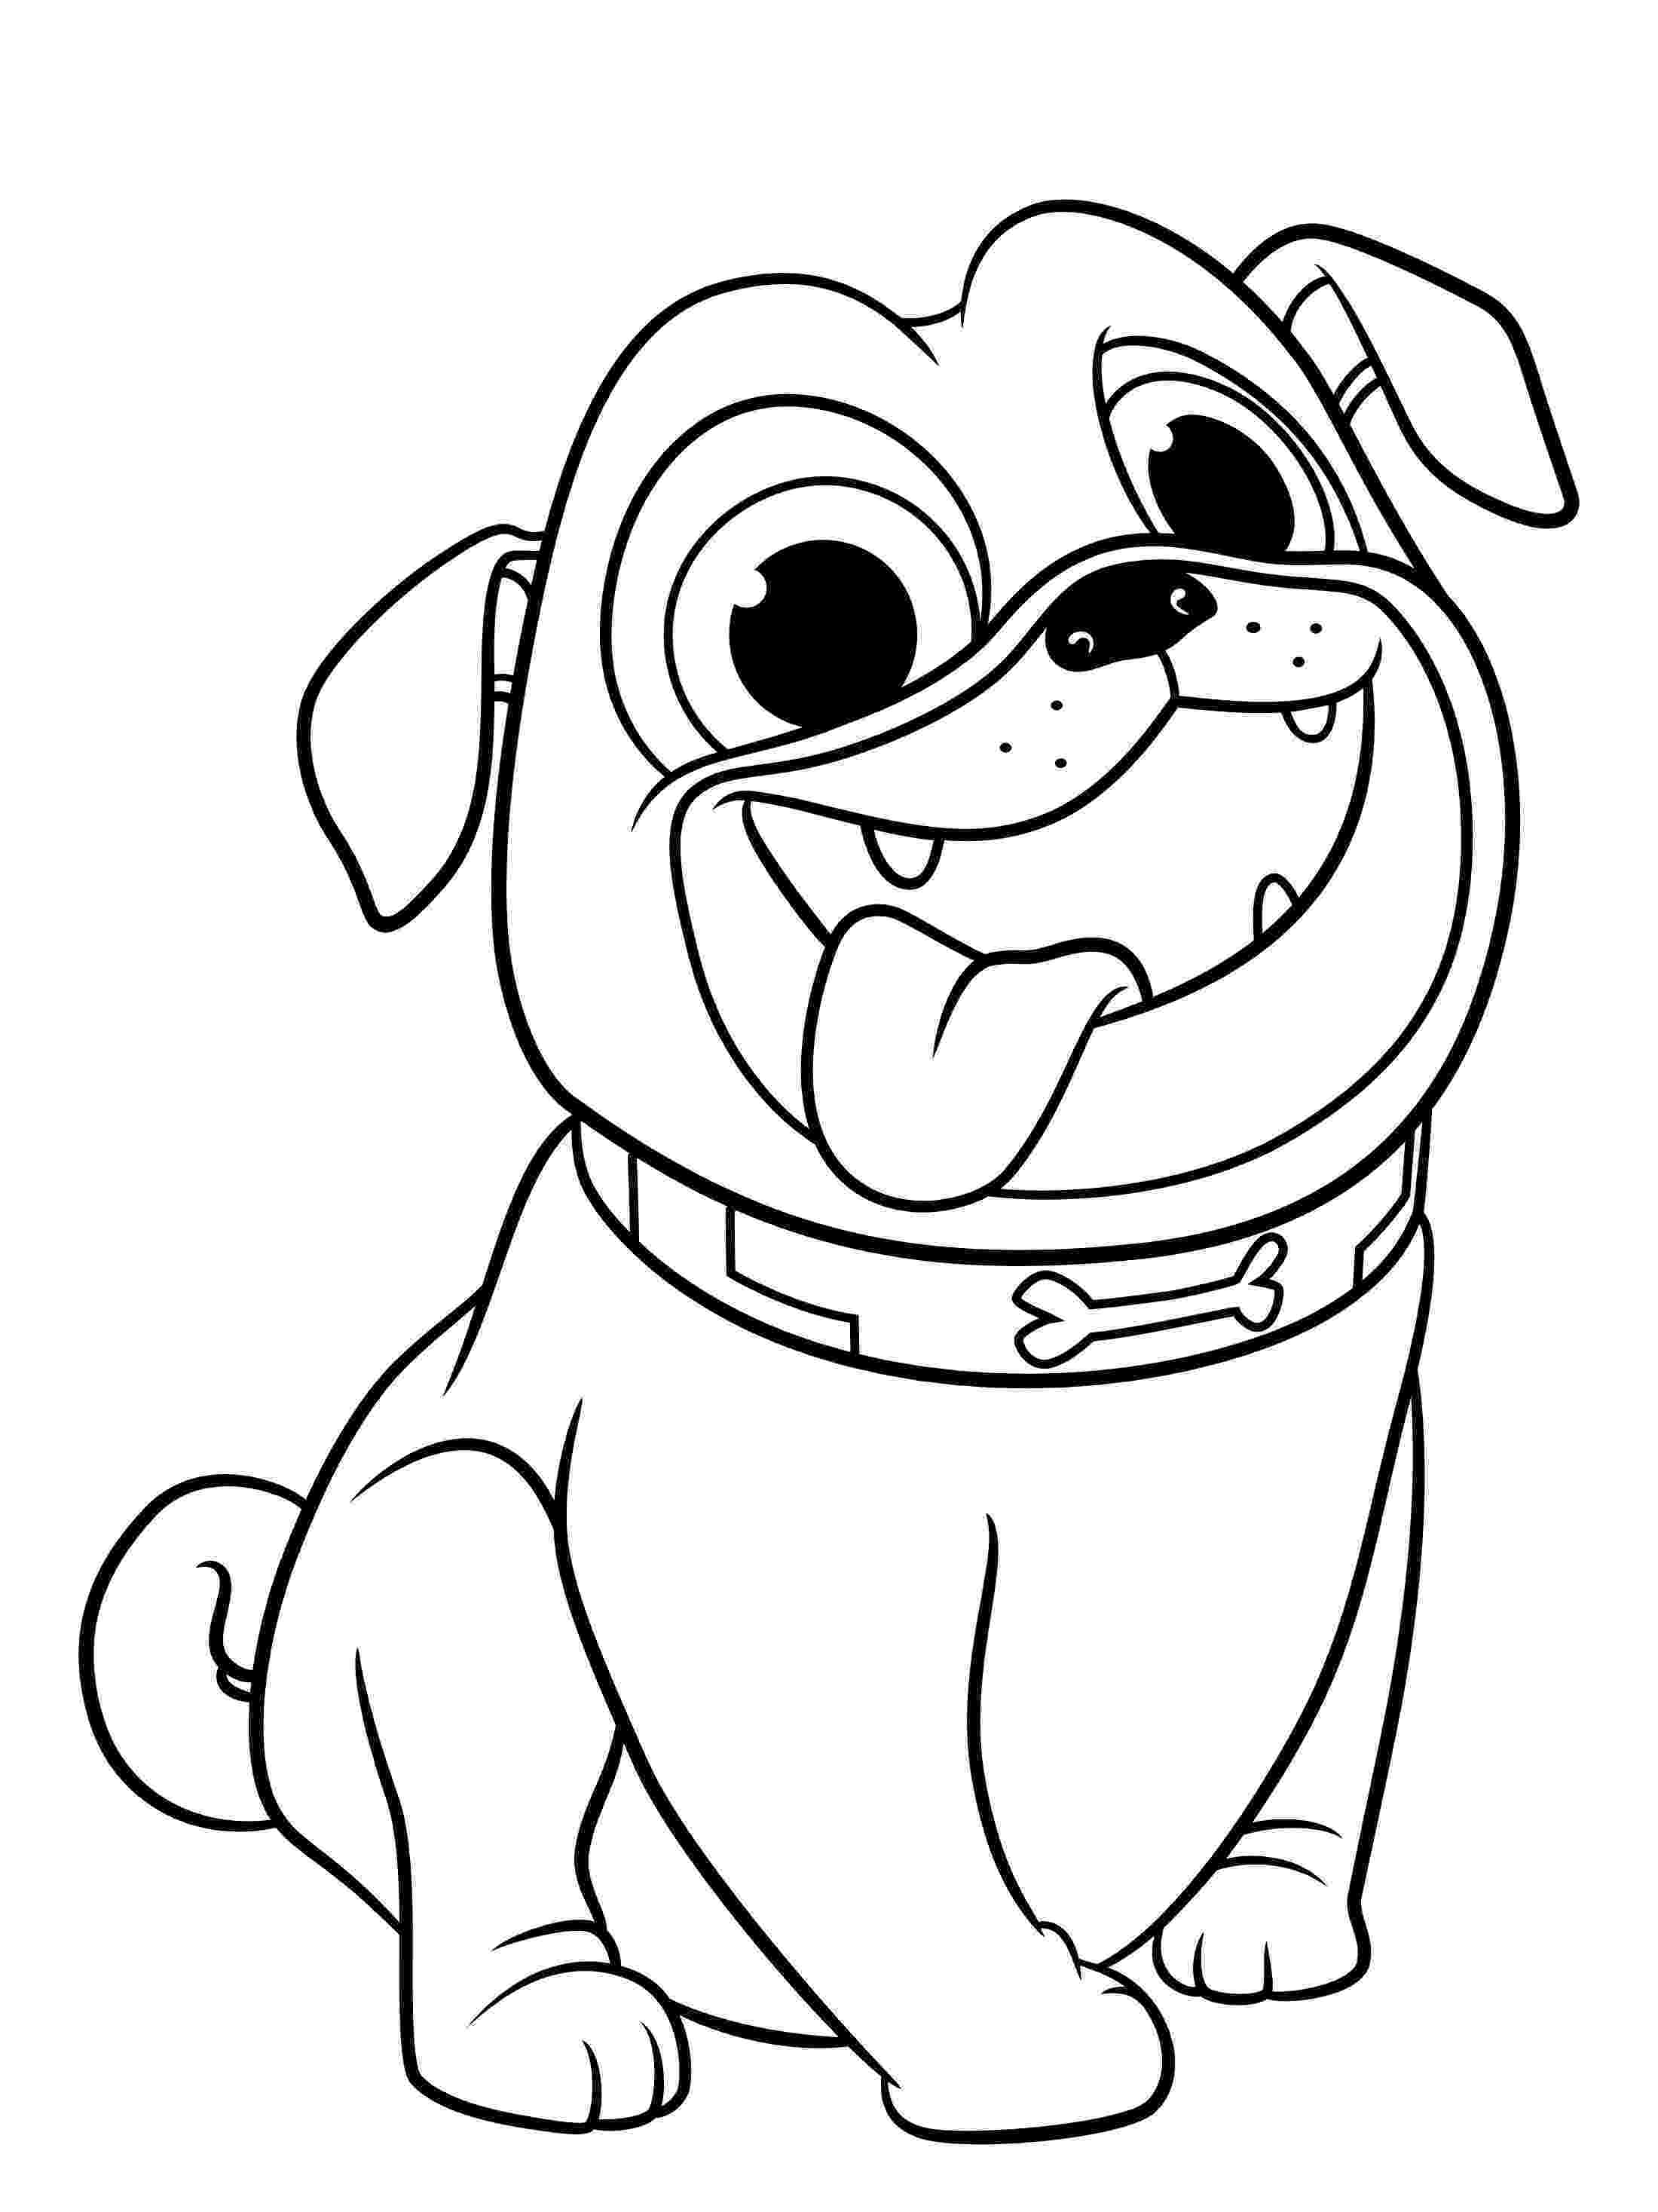 coloring page of dog puppy coloring pages best coloring pages for kids dog page of coloring